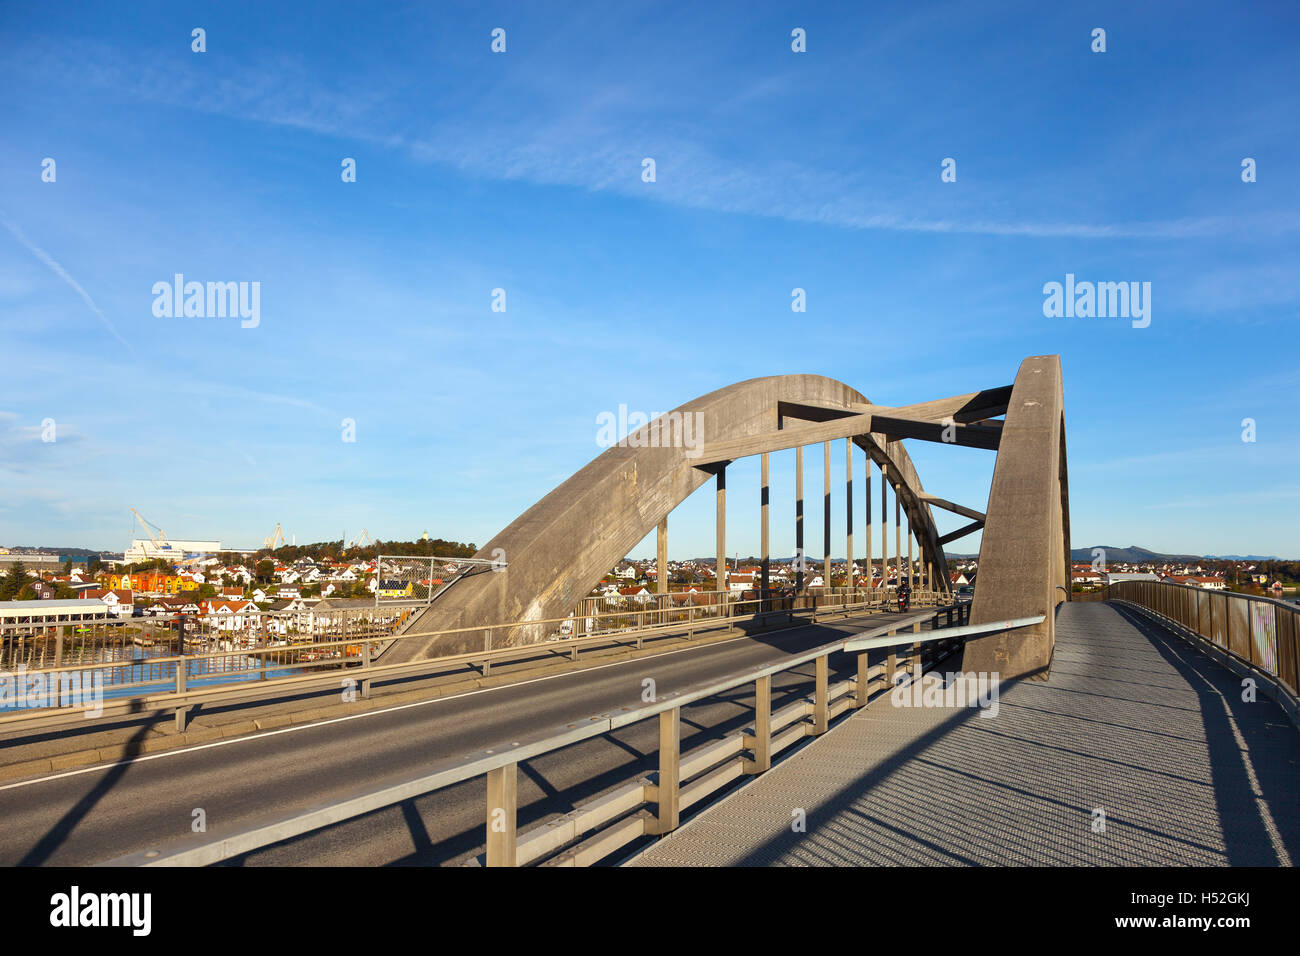 The bridge connecting islands the Grasholmen with the Solyst in Stavanger, Norway. - Stock Image